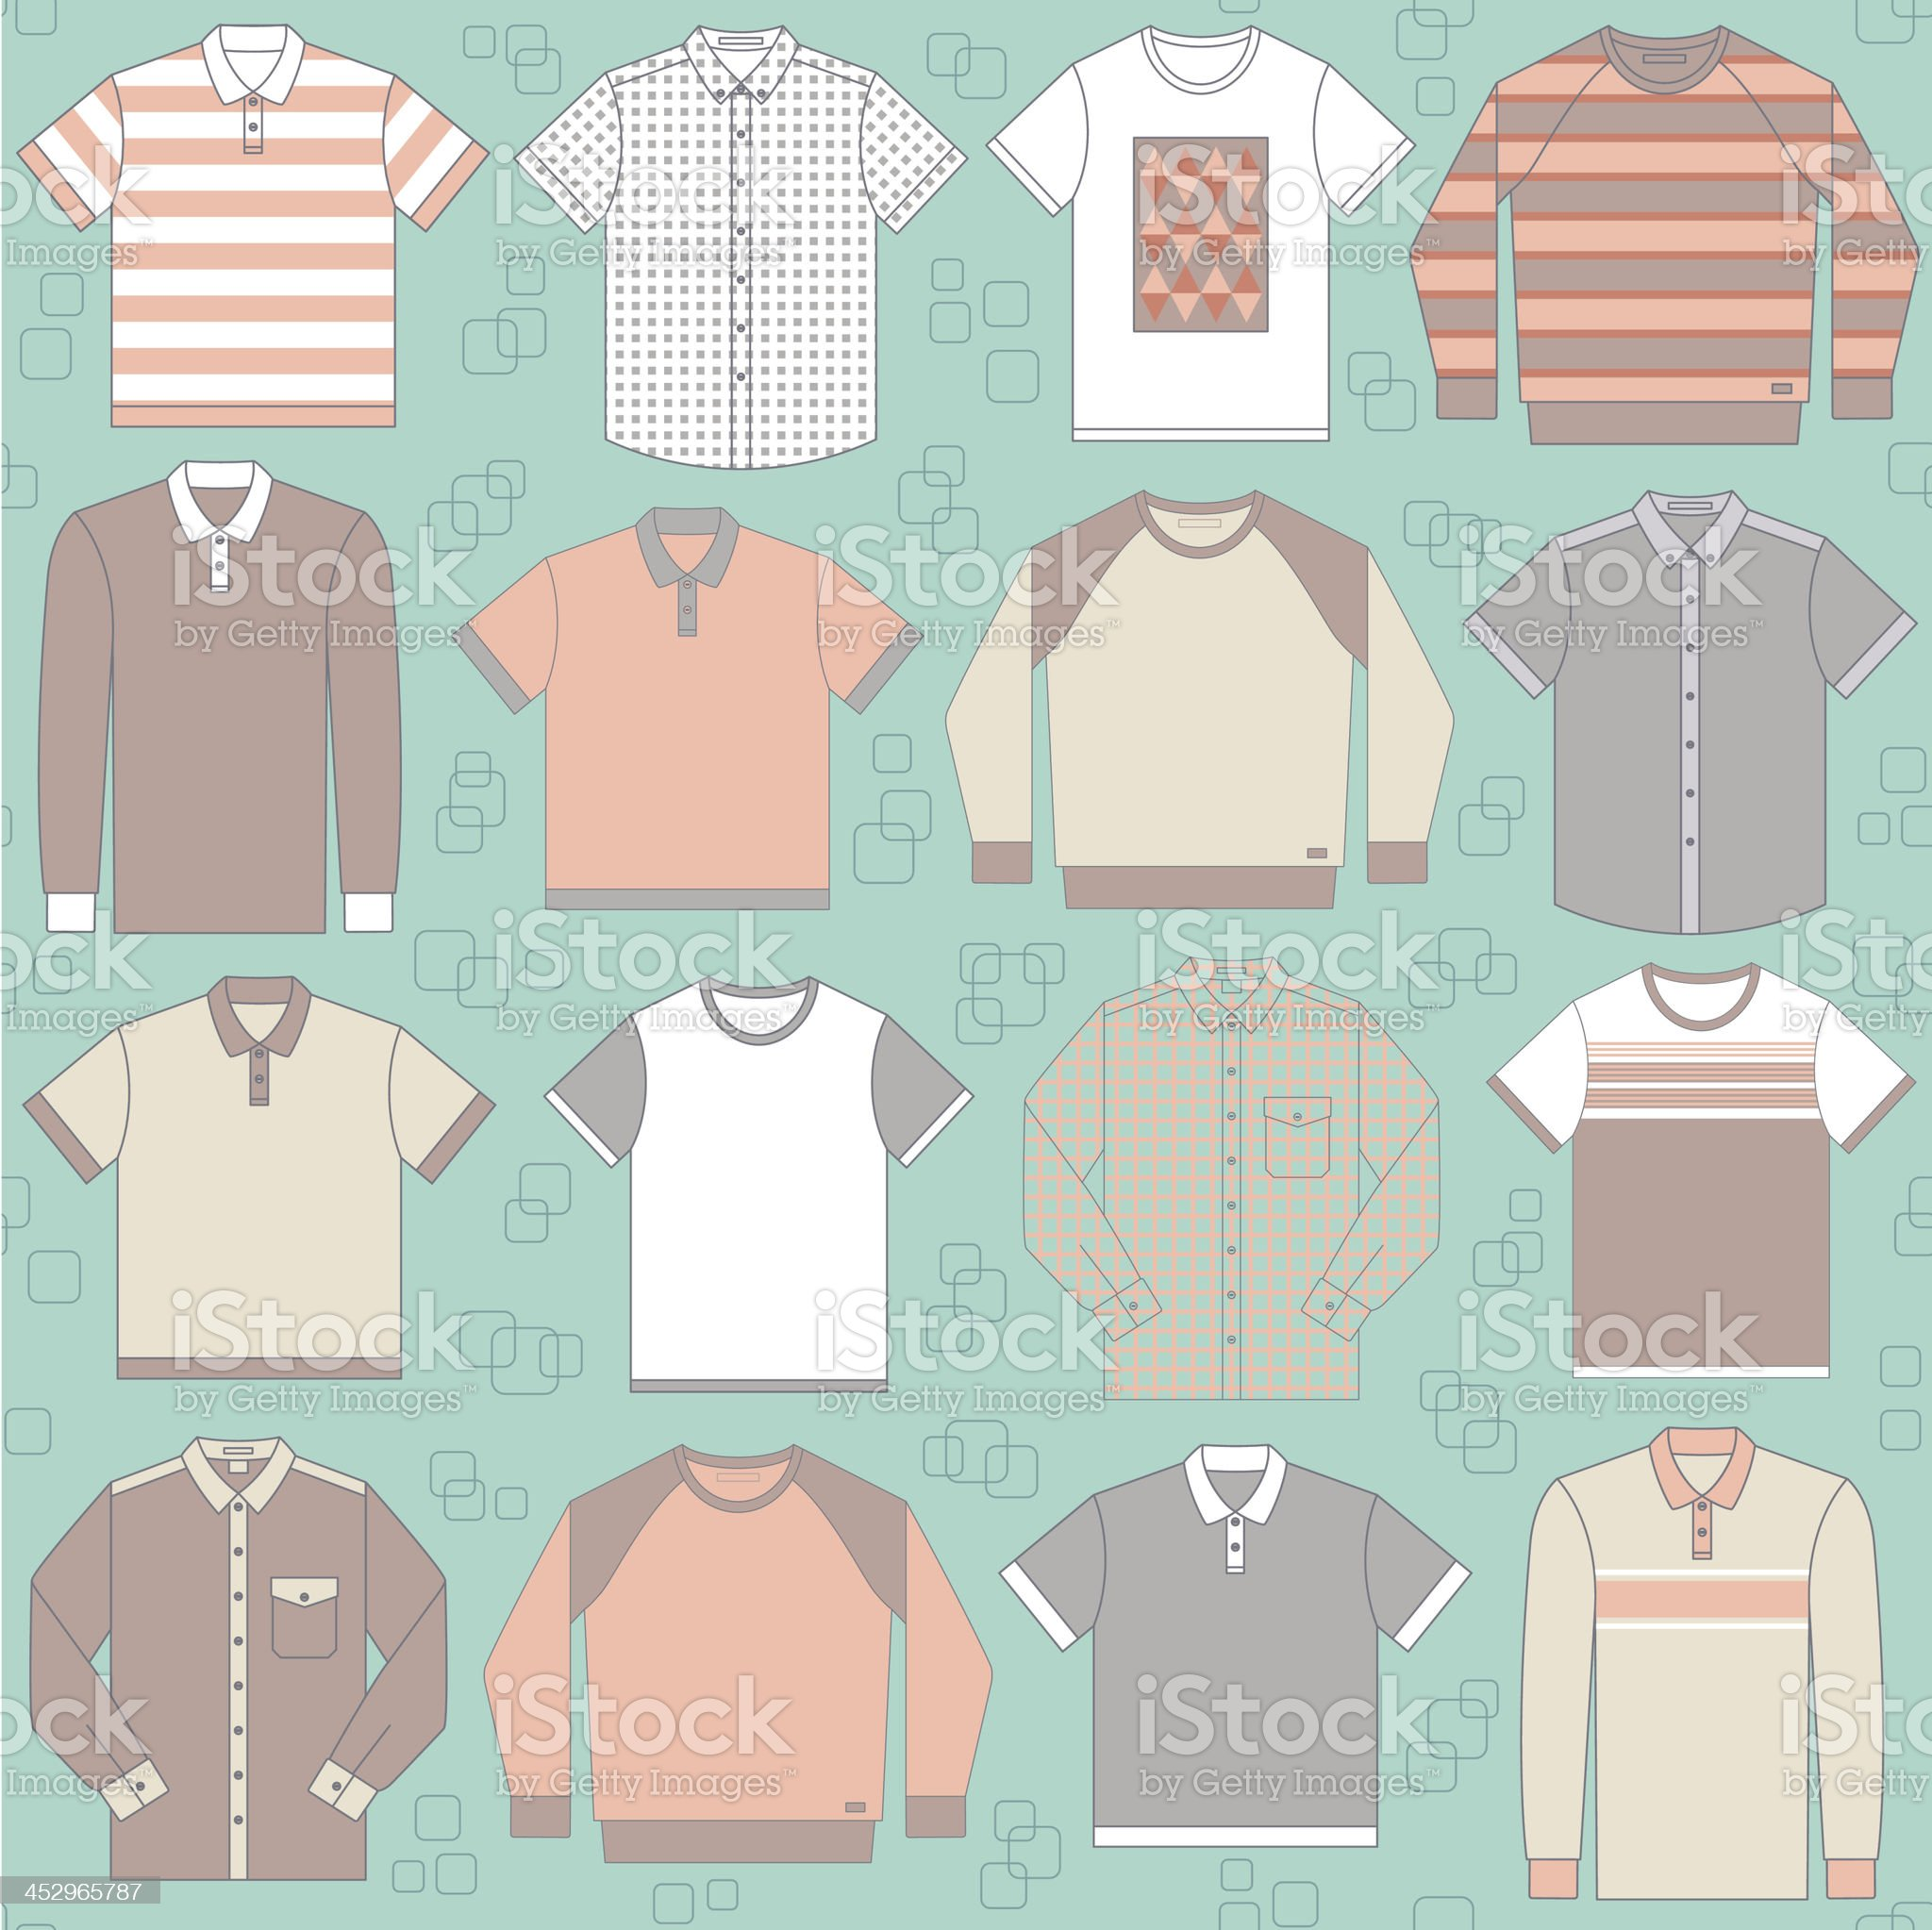 seamless pattern with clothing for men royalty-free stock vector art